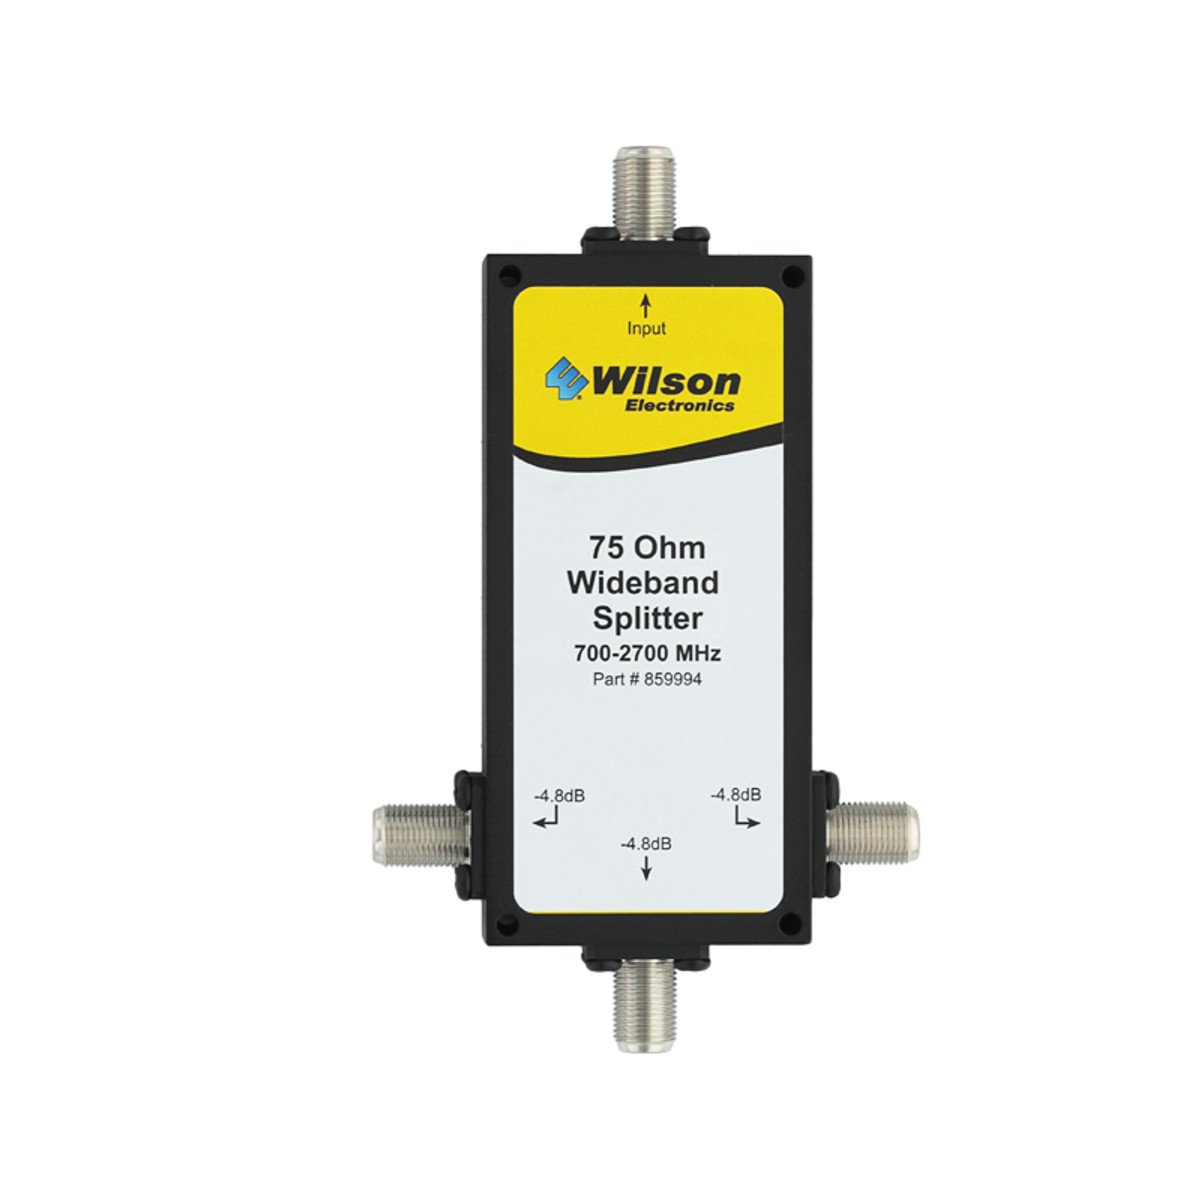 Wilson 859994 3-Way Splitter 75 Ohm, Front